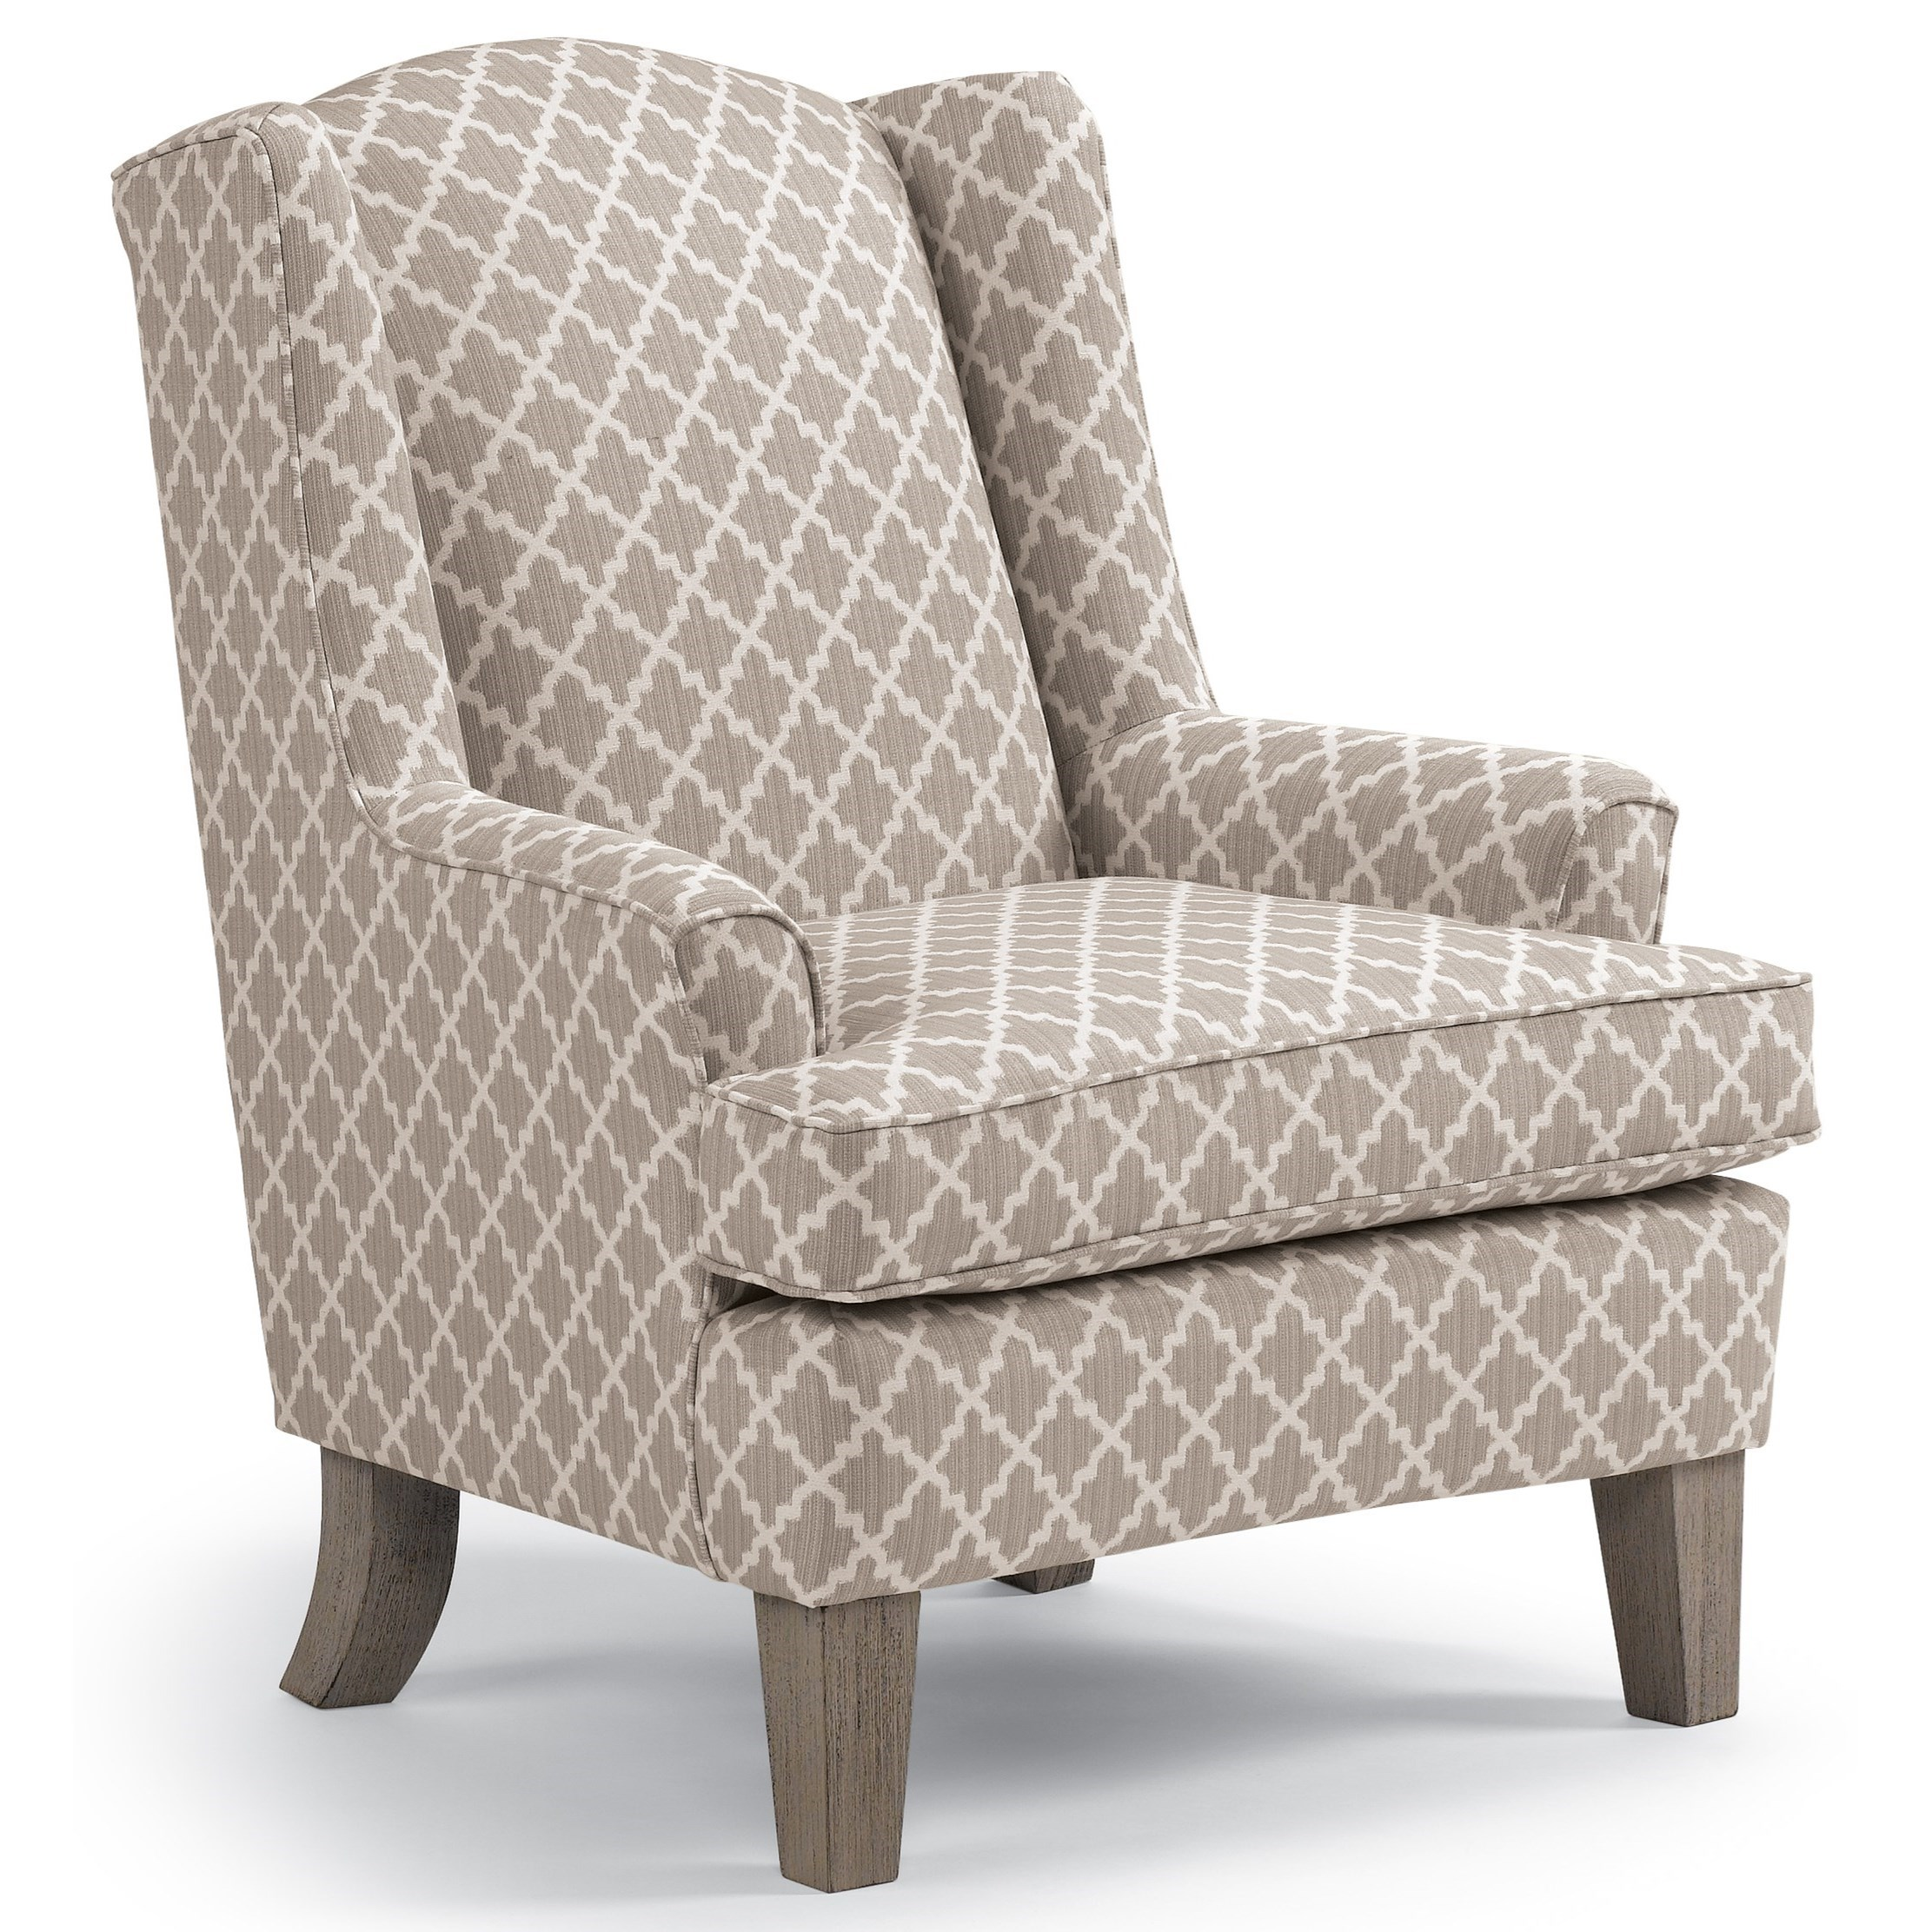 Best Home Furnishings Wing Chairs Andrea Wing Chair Lindy S Furniture Company Wing Chairs